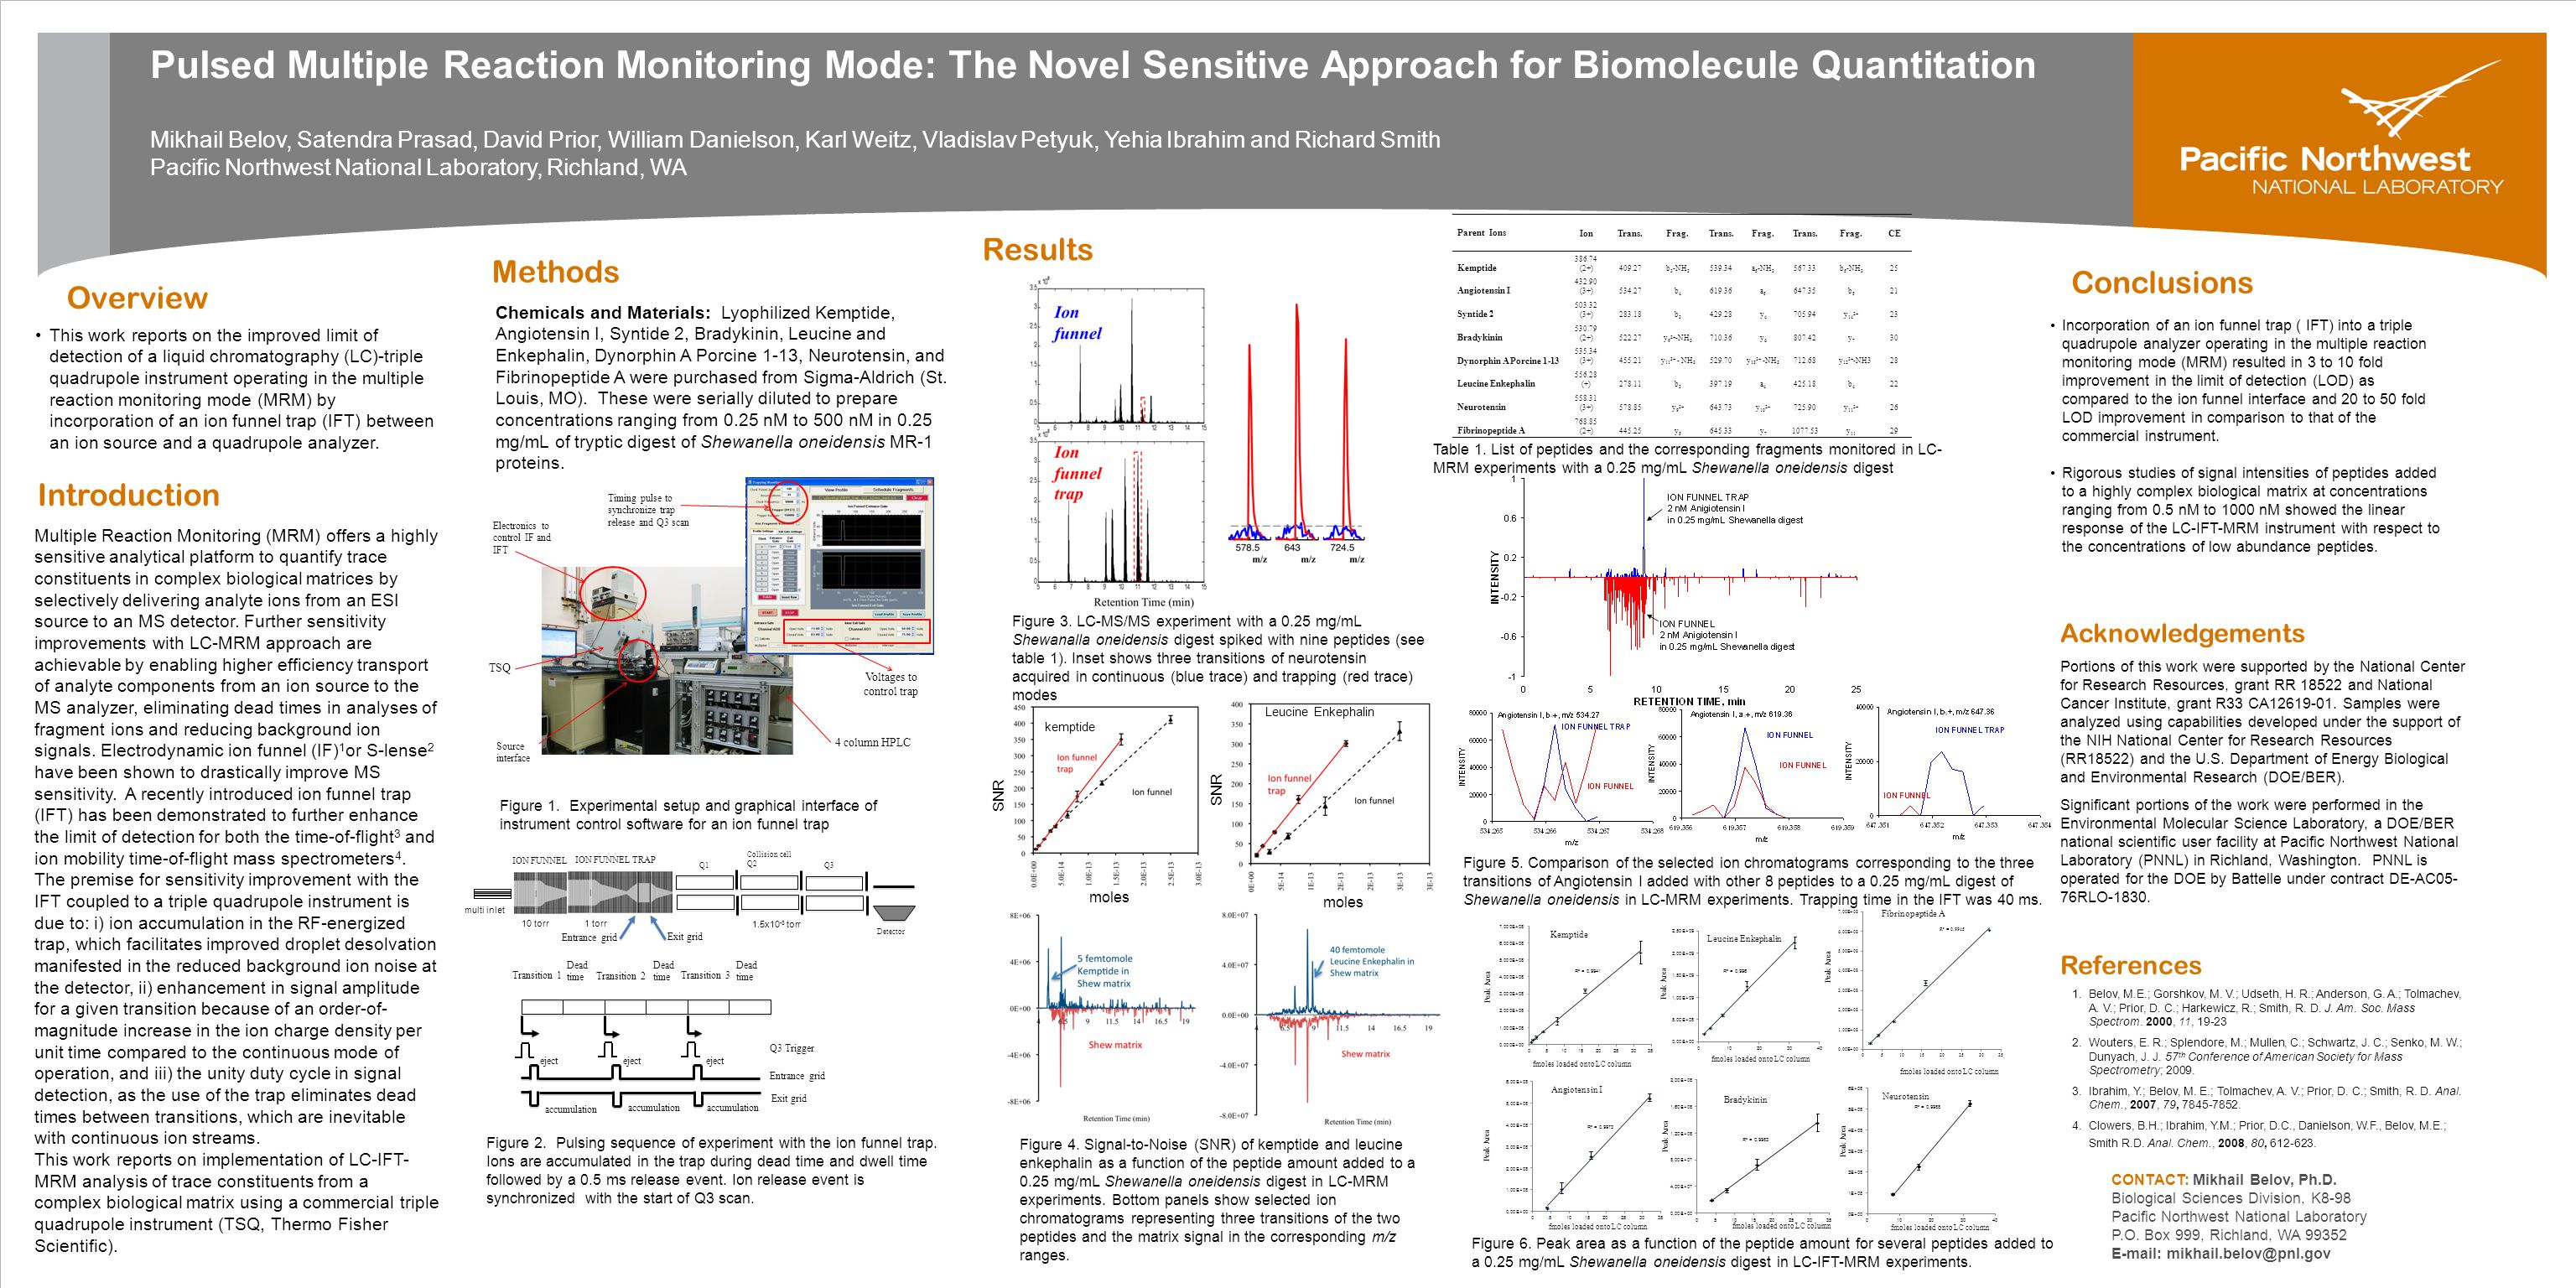 Pulsed Multiple Reaction Monitoring Mode: The Novel Sensitive Approach for Biomolecule Quantitation Mikhail Belov, Satendra Prasad, David Prior, William Danielson, Karl Weitz, Vladislav Petyuk, Yehia Ibrahim and Richard Smith Pacific Northwest National Laboratory, Richland, WA Introduction Overview Methods Results Acknowledgements Portions of this work were supported by the National Center for Research Resources, grant RR 18522 and National Cancer Institute, grant R33 CA12619-01.